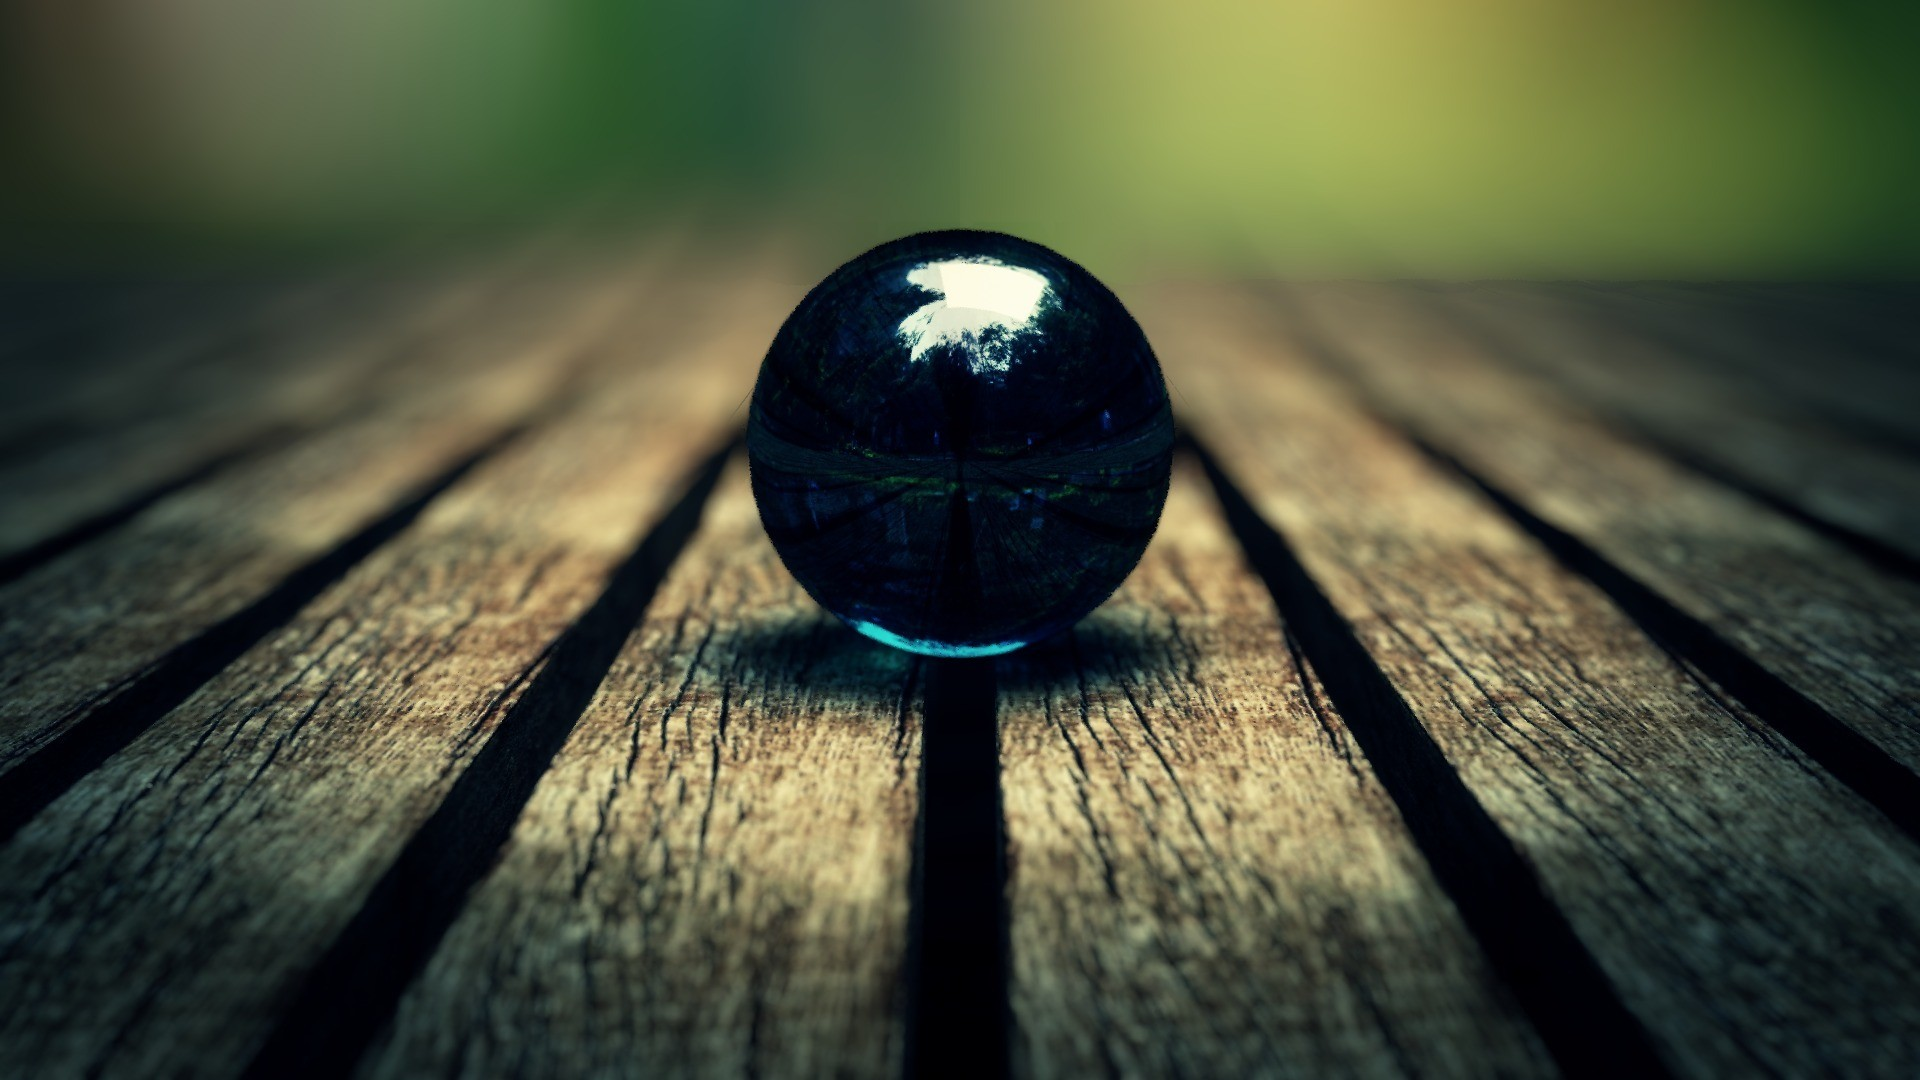 1920x1080 Blue Ball With Green Reflections Desktop Pc And